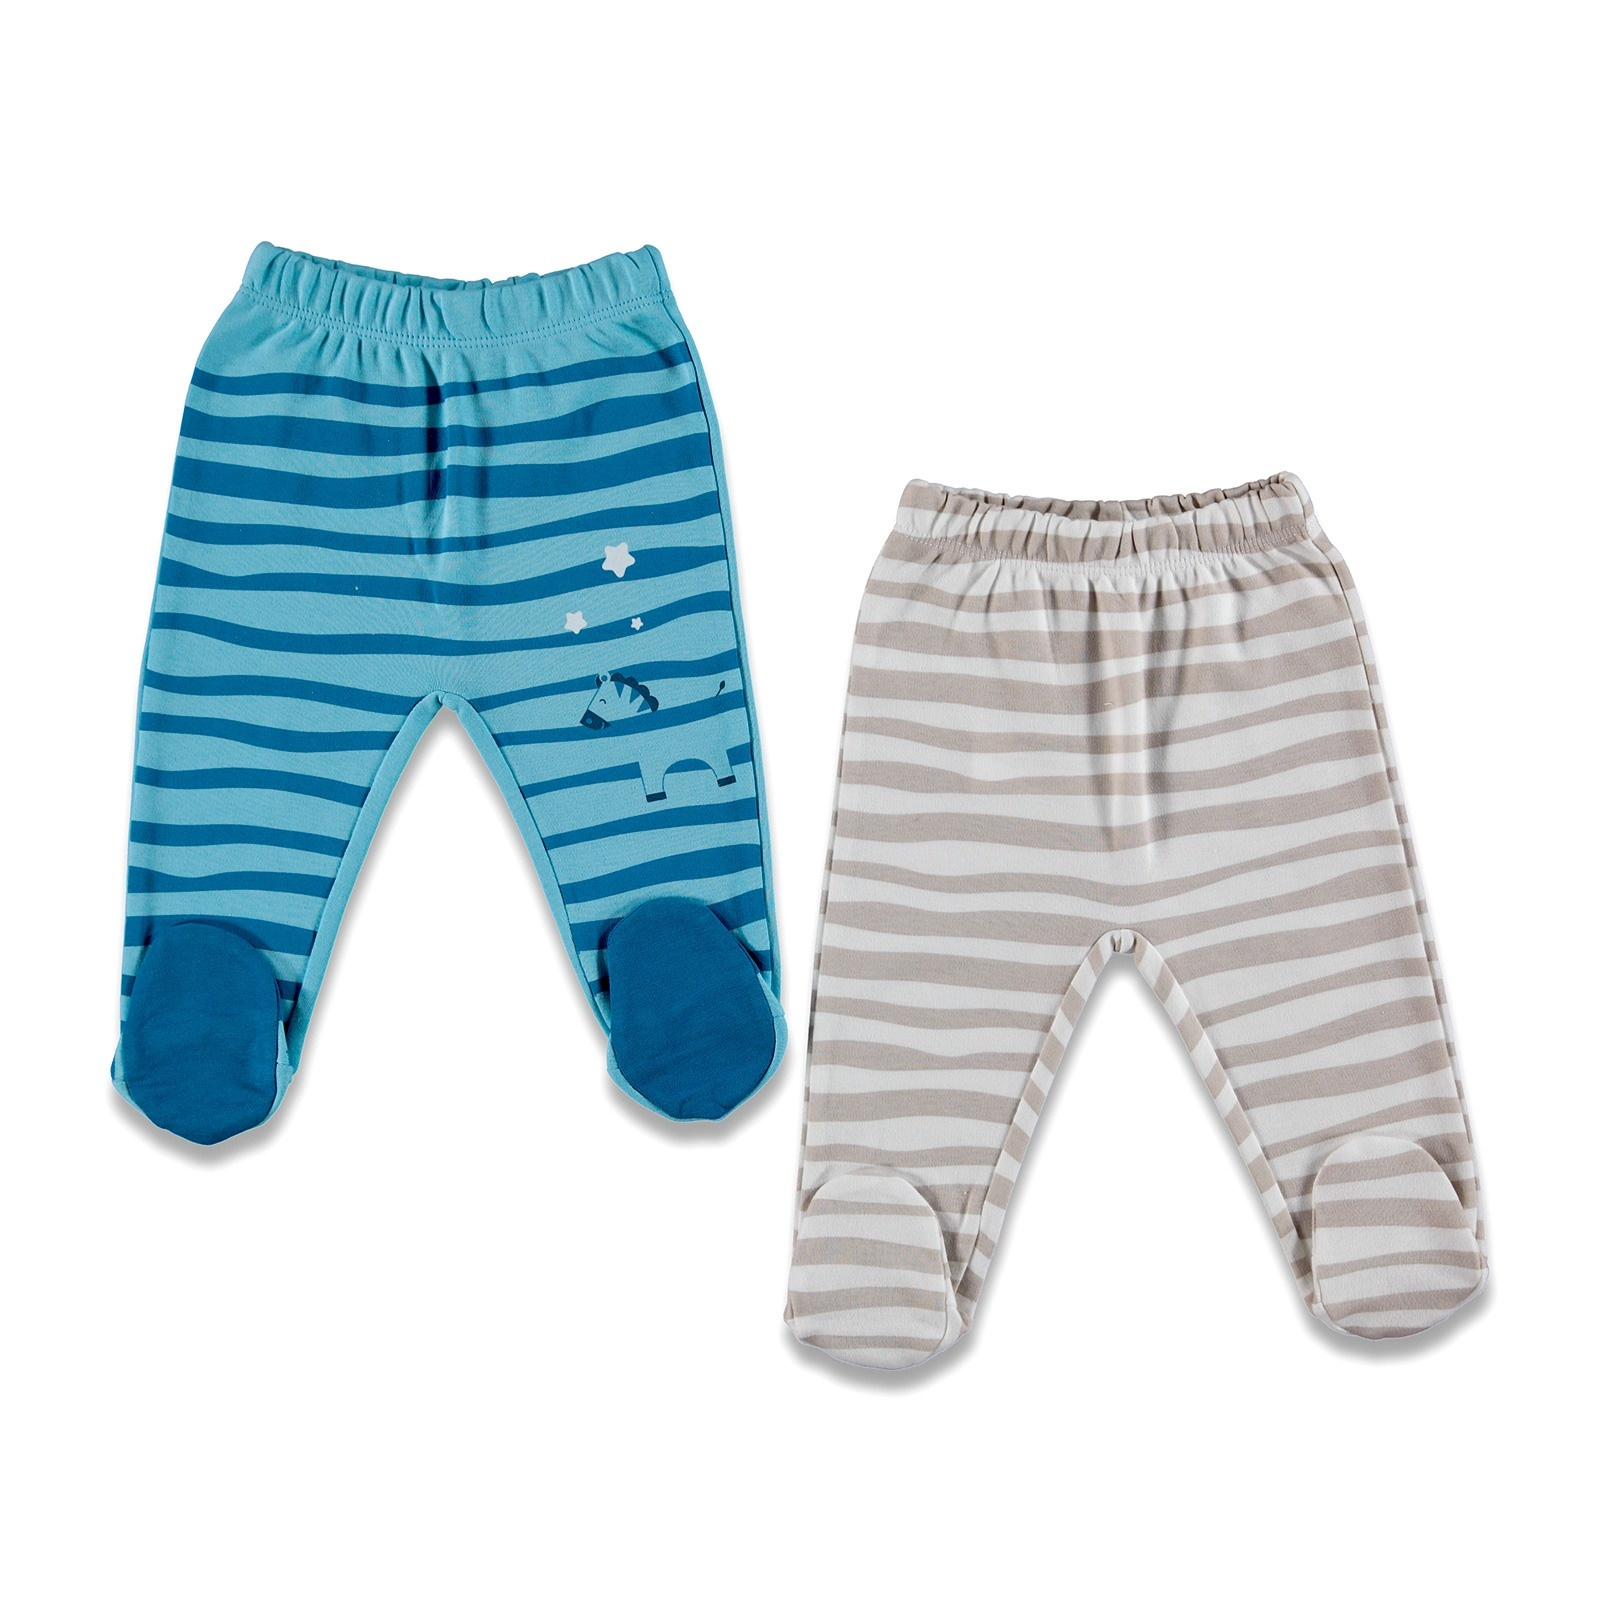 Ebebek Fisher Price Play With Me Baby Footed Trousers 2 Pack